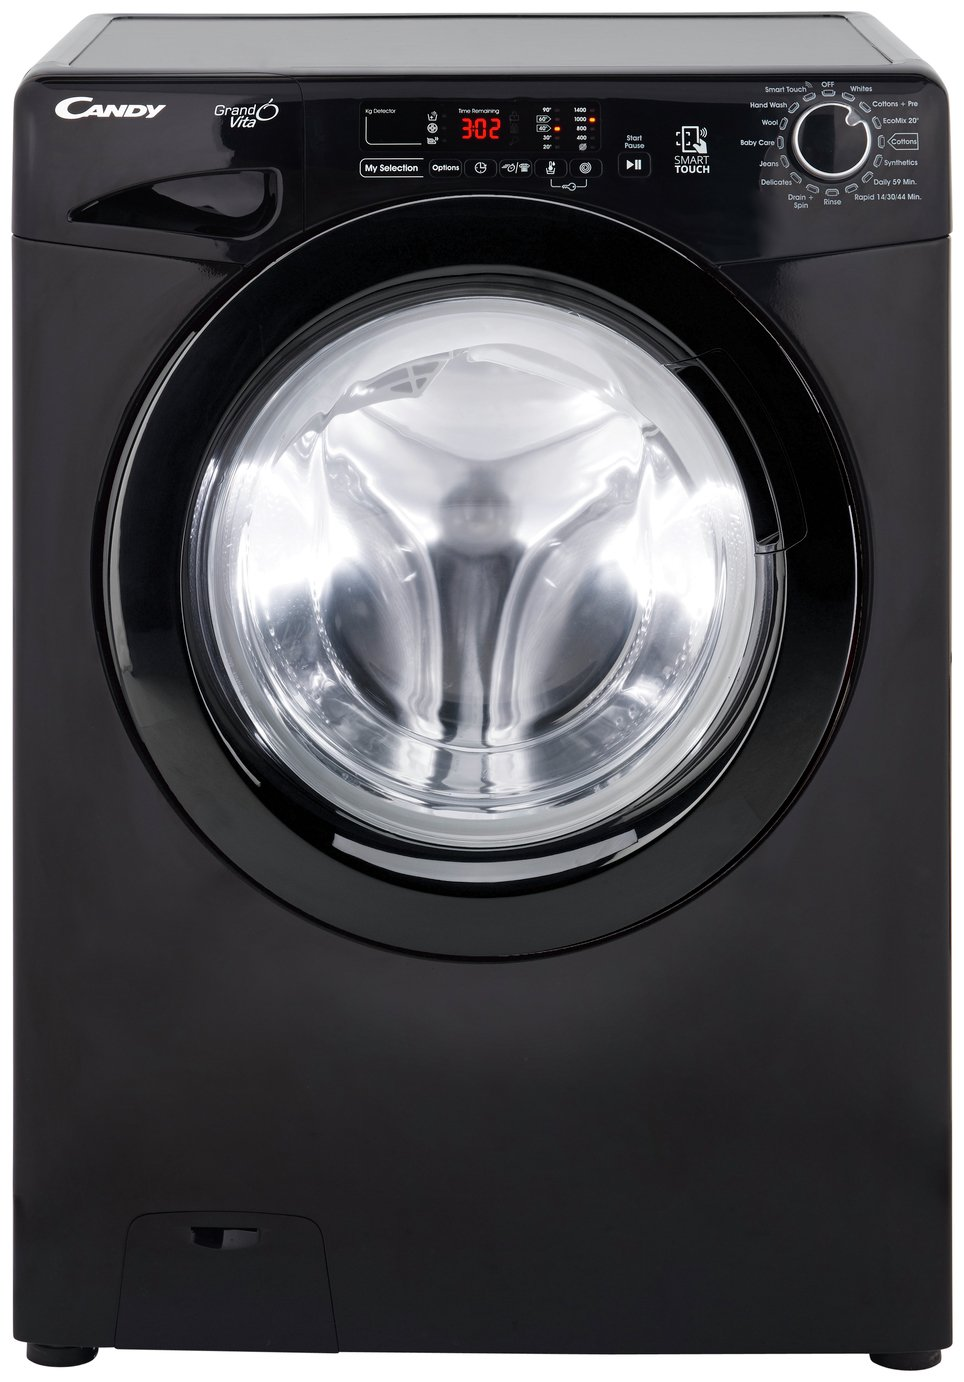 Candy GVS149D3B 9KG 1400 Spin Washing Machine - Black Best Price, Cheapest Prices